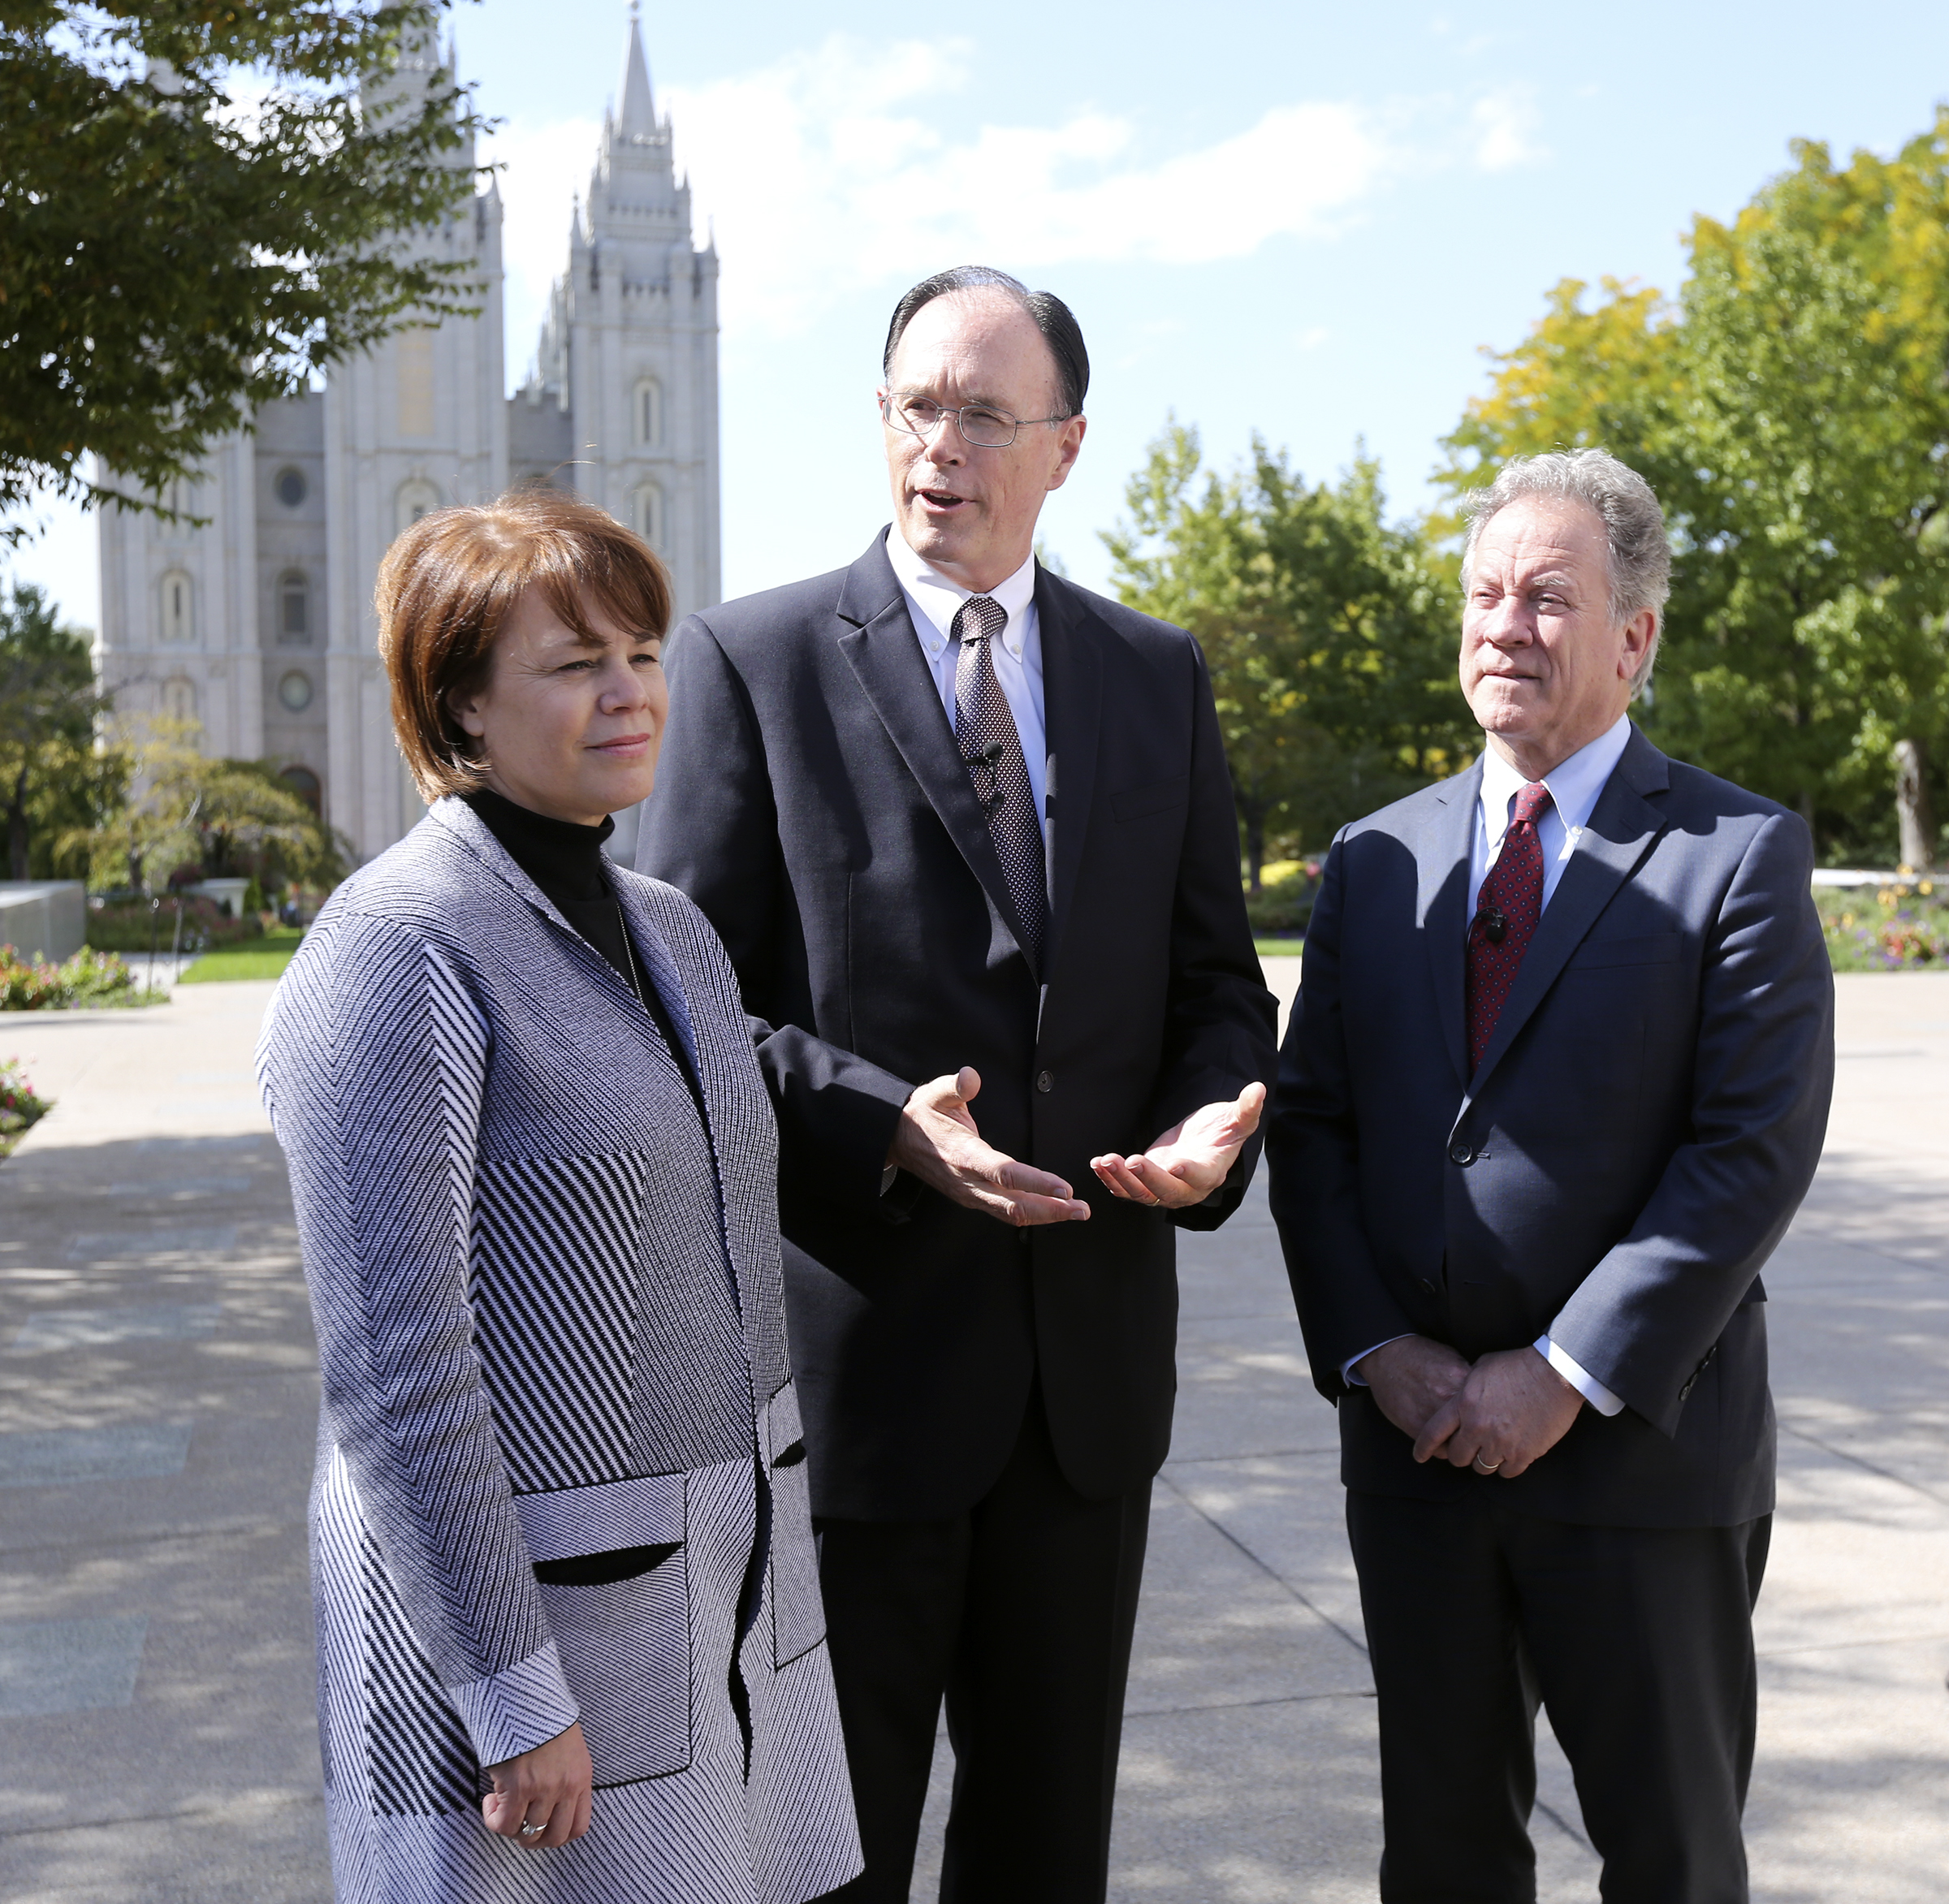 Sister Sharon Eubank, first counselor in the Relief Society general presidency of The Church of Jesus Christ of Latter-day Saints, Bishop W. Christopher Waddell, second counselor in the Presiding Bishopric of The Church of Jesus Christ of Latter-day Saints, and David Beasley, United Nations World Food Programme executive director, talk to members of the media at Temple Square in Salt Lake City on Monday, Sept. 30, 2019.